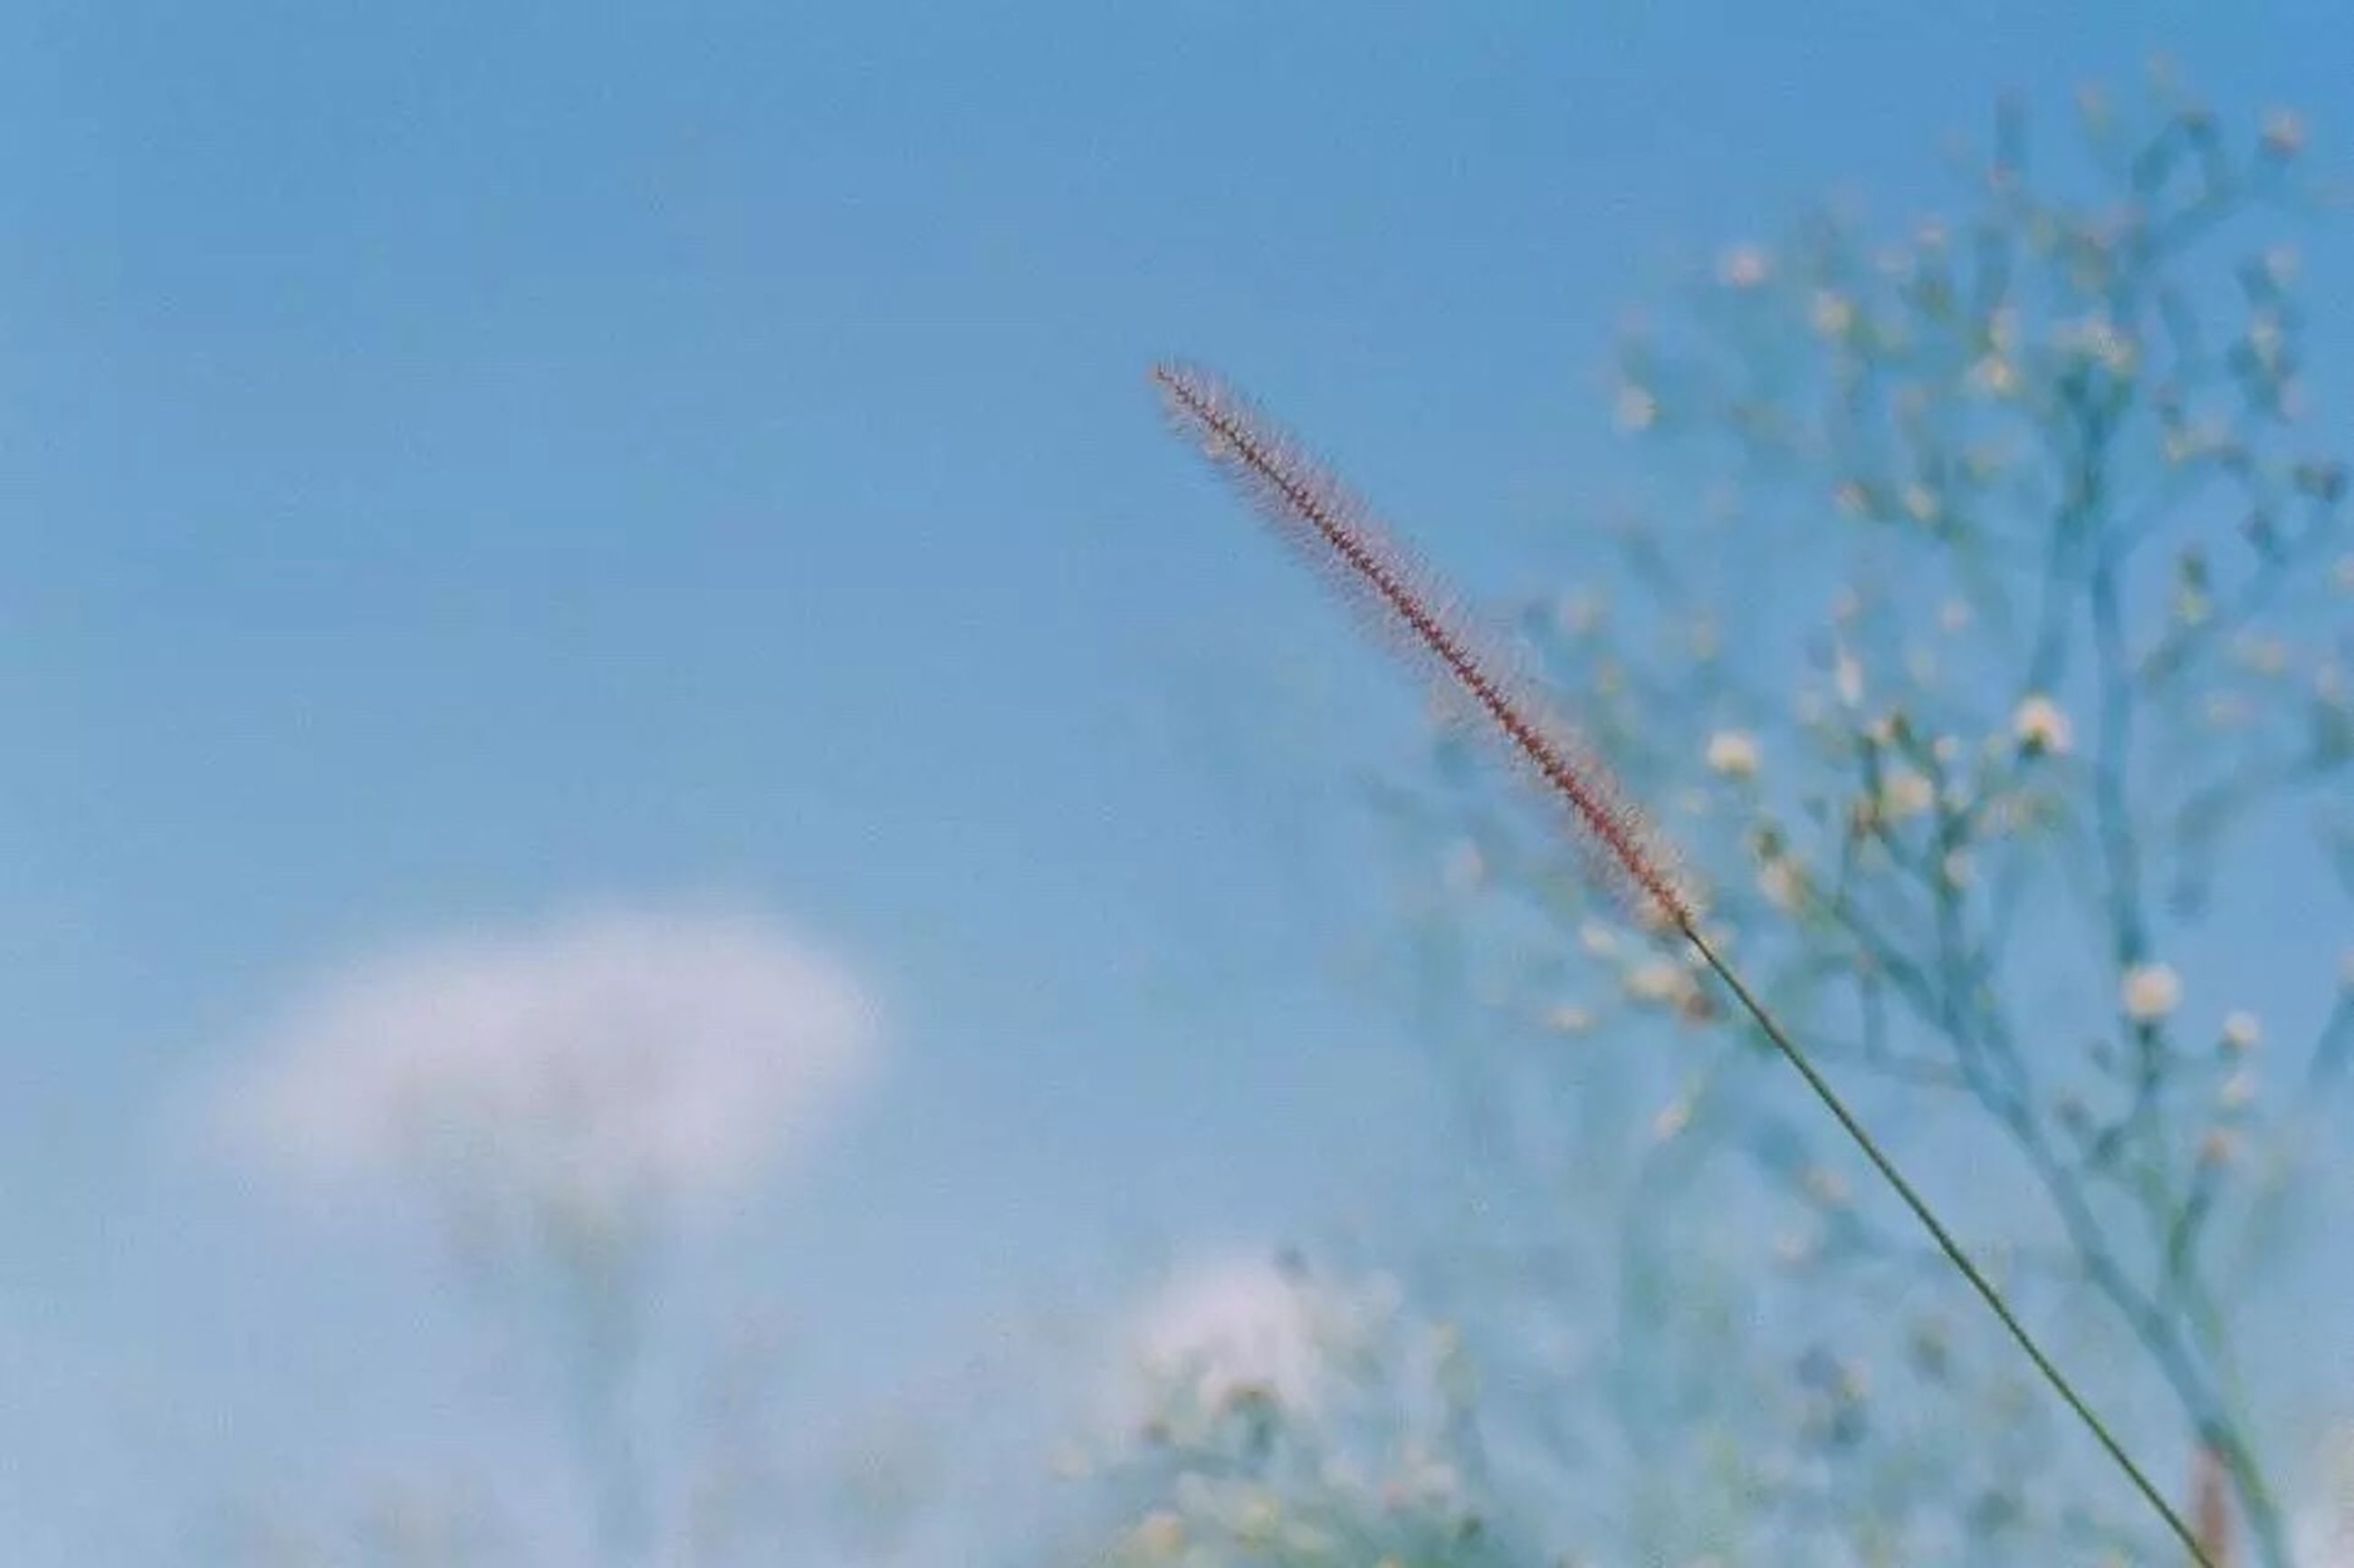 plant, nature, growth, focus on foreground, blue, close-up, selective focus, stem, day, beauty in nature, low angle view, sky, outdoors, field, tranquility, no people, twig, copy space, clear sky, fragility